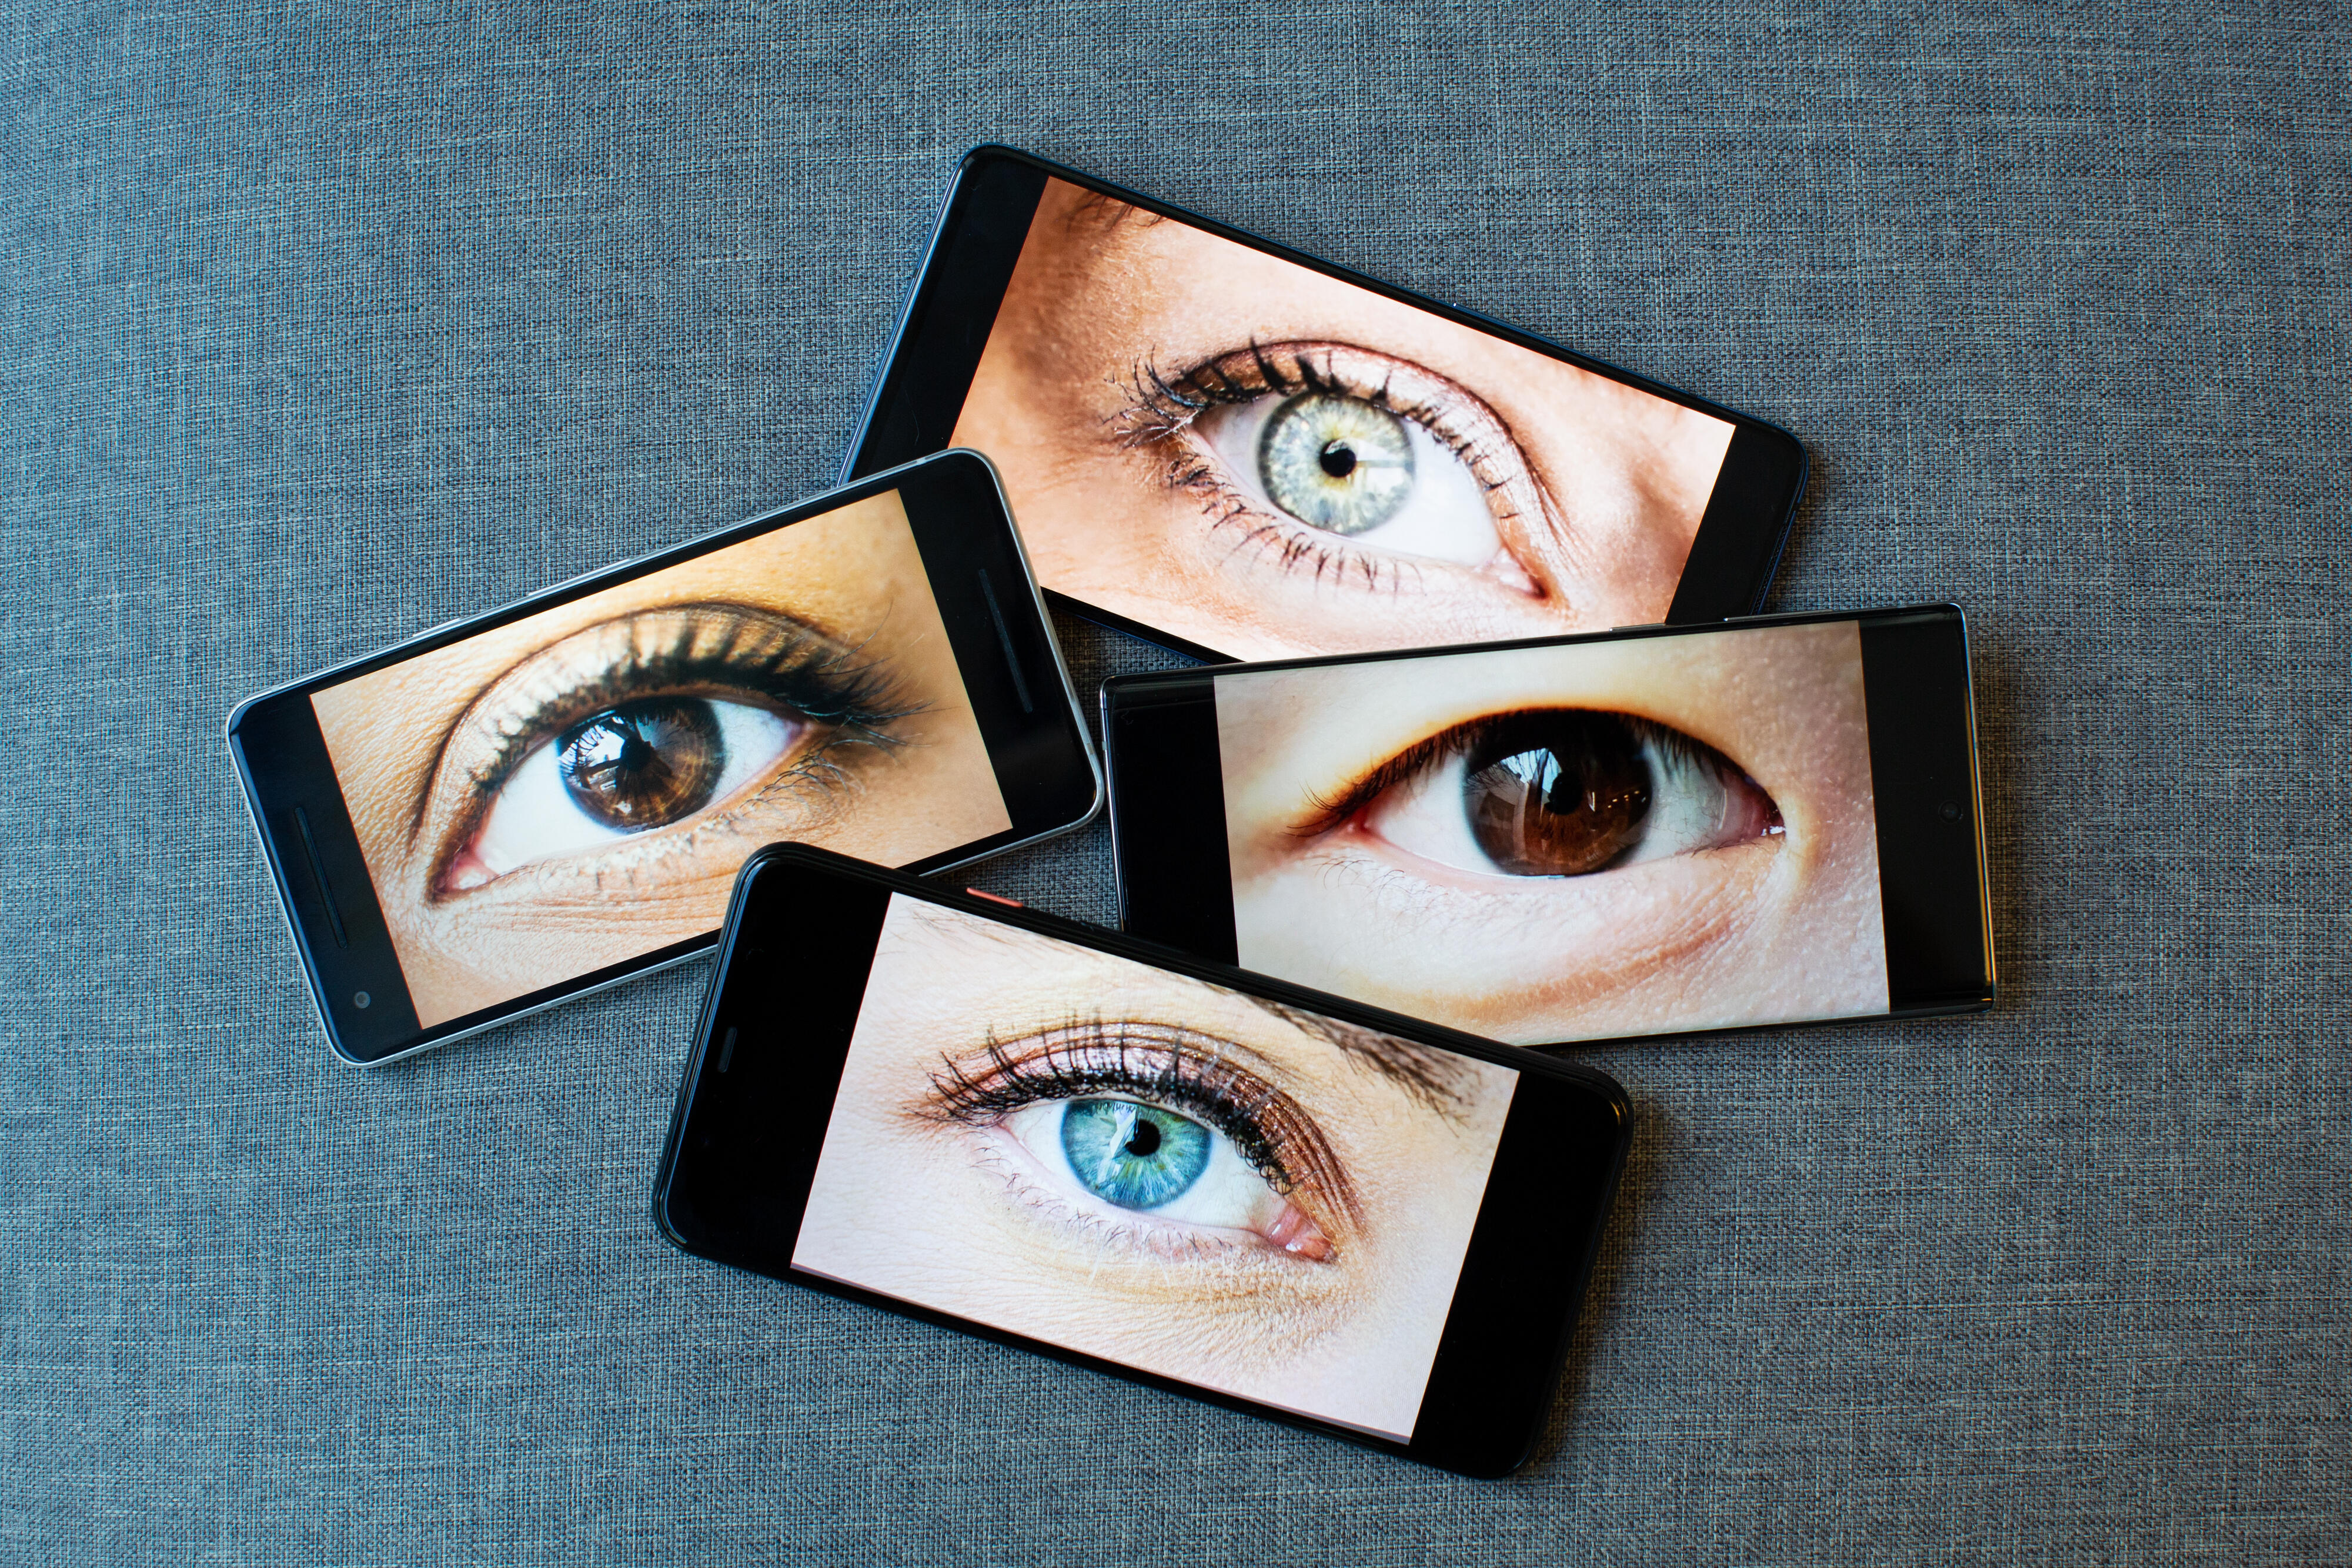 Illustration with phones featuring eyes on their screens